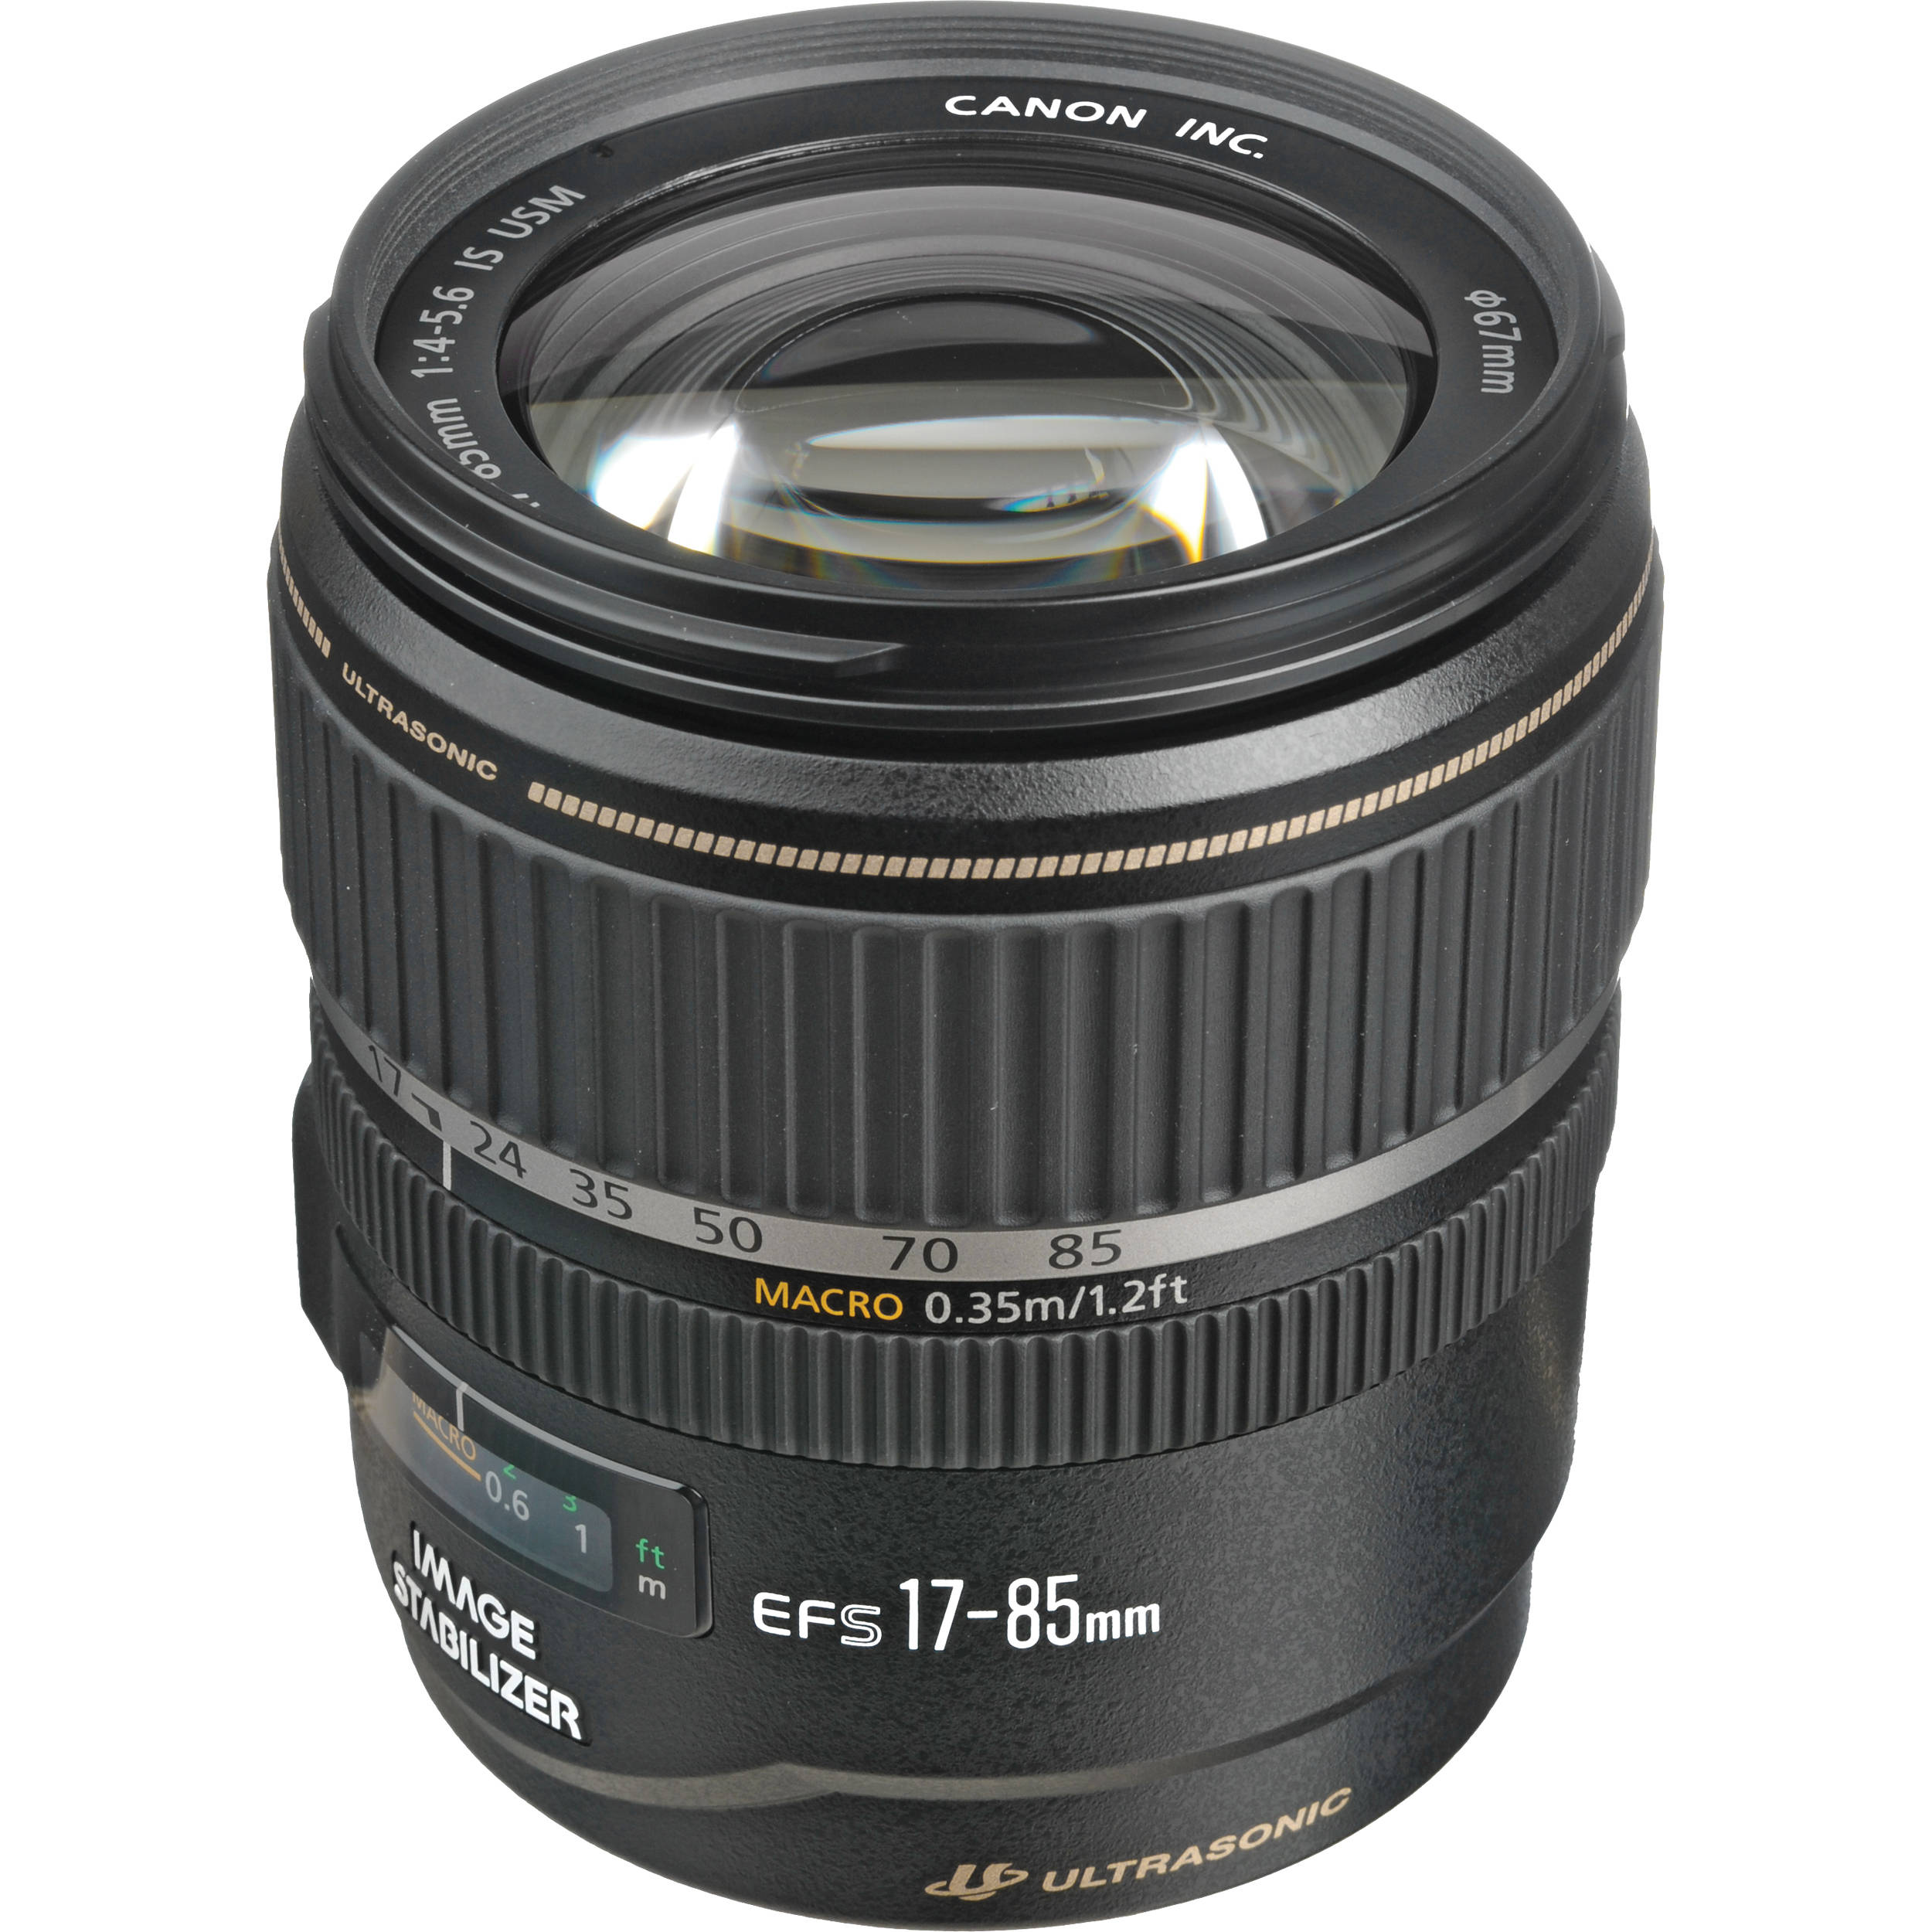 Translations Into Italian: Canon EF-S 17-85mm F/4-5.6 IS USM Lens 9517A002 B&H Photo